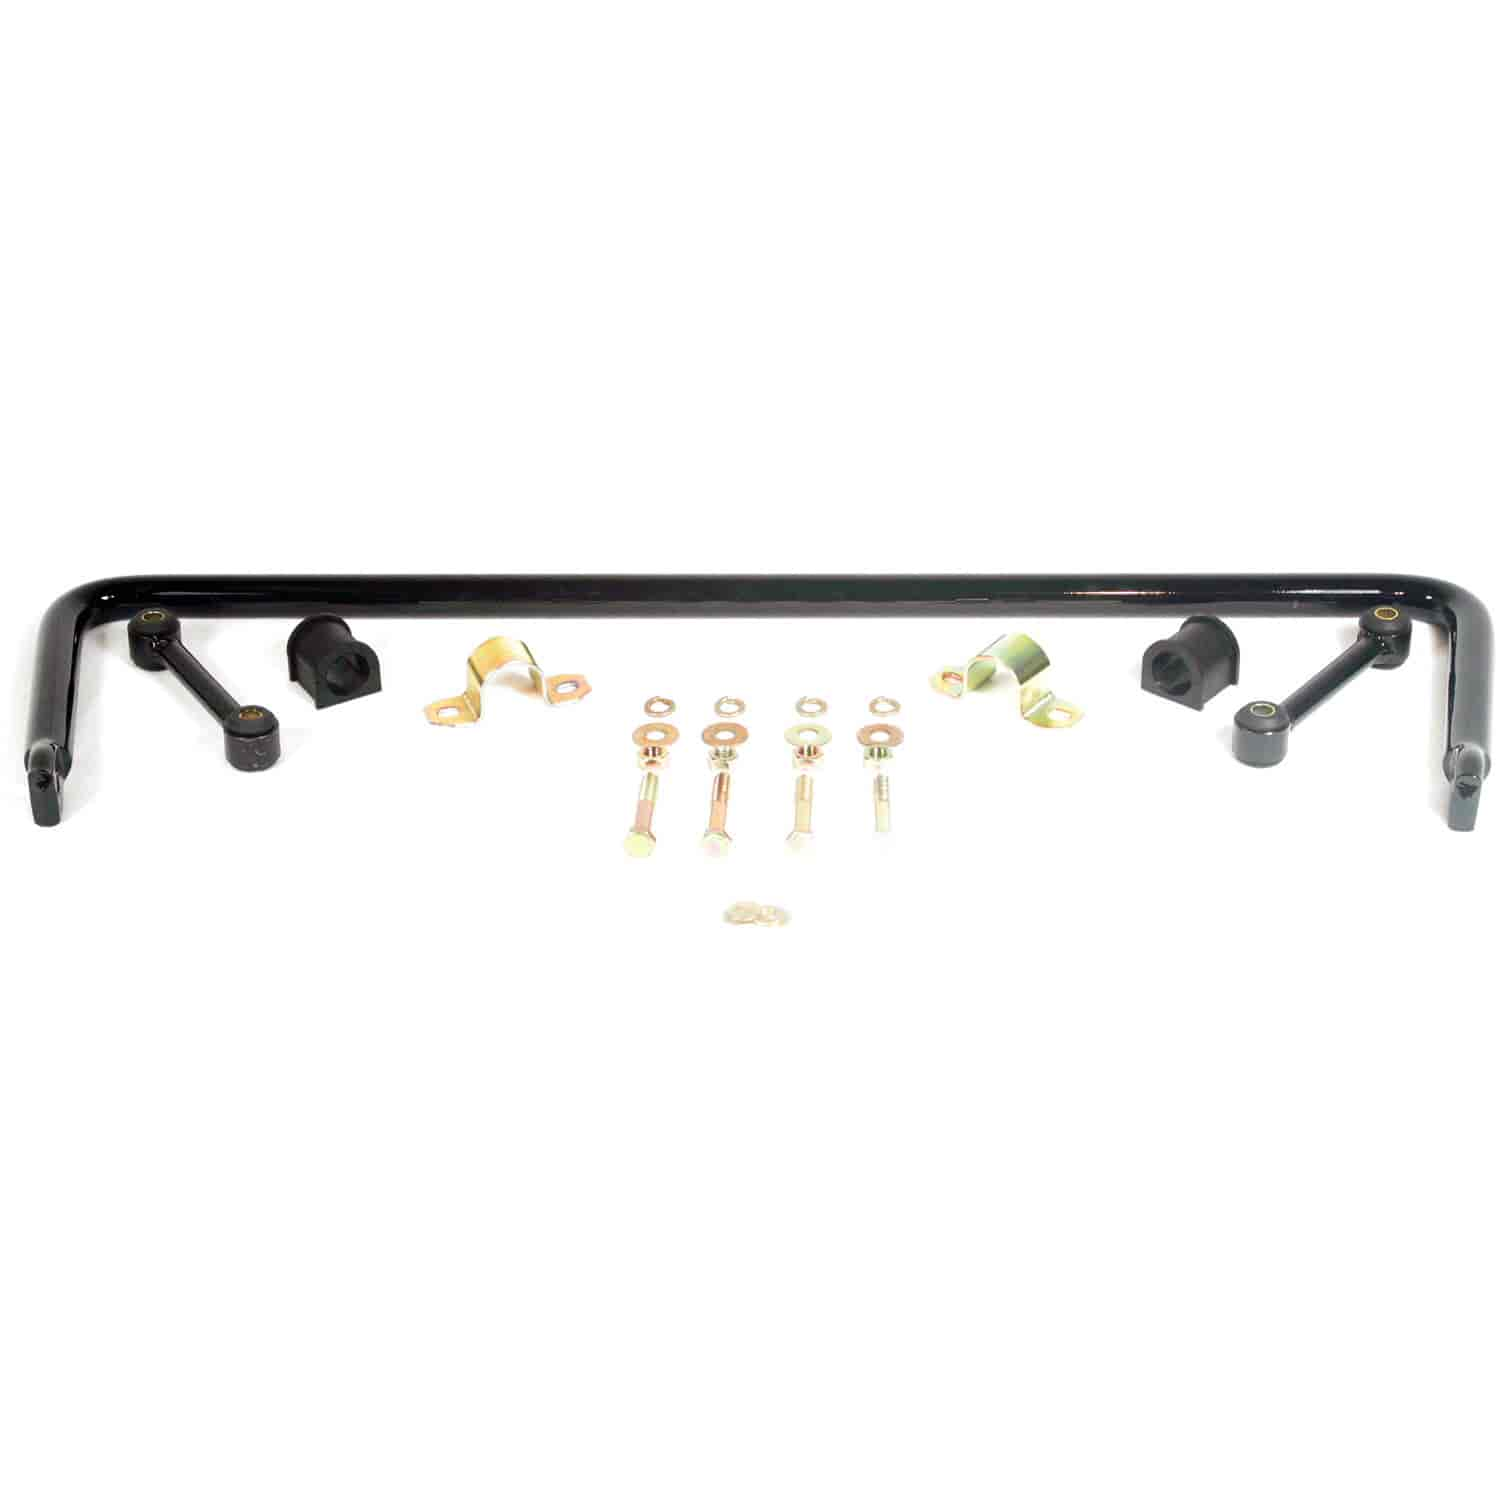 ADDCO 179 - ADDCO Jeep Sway Bars